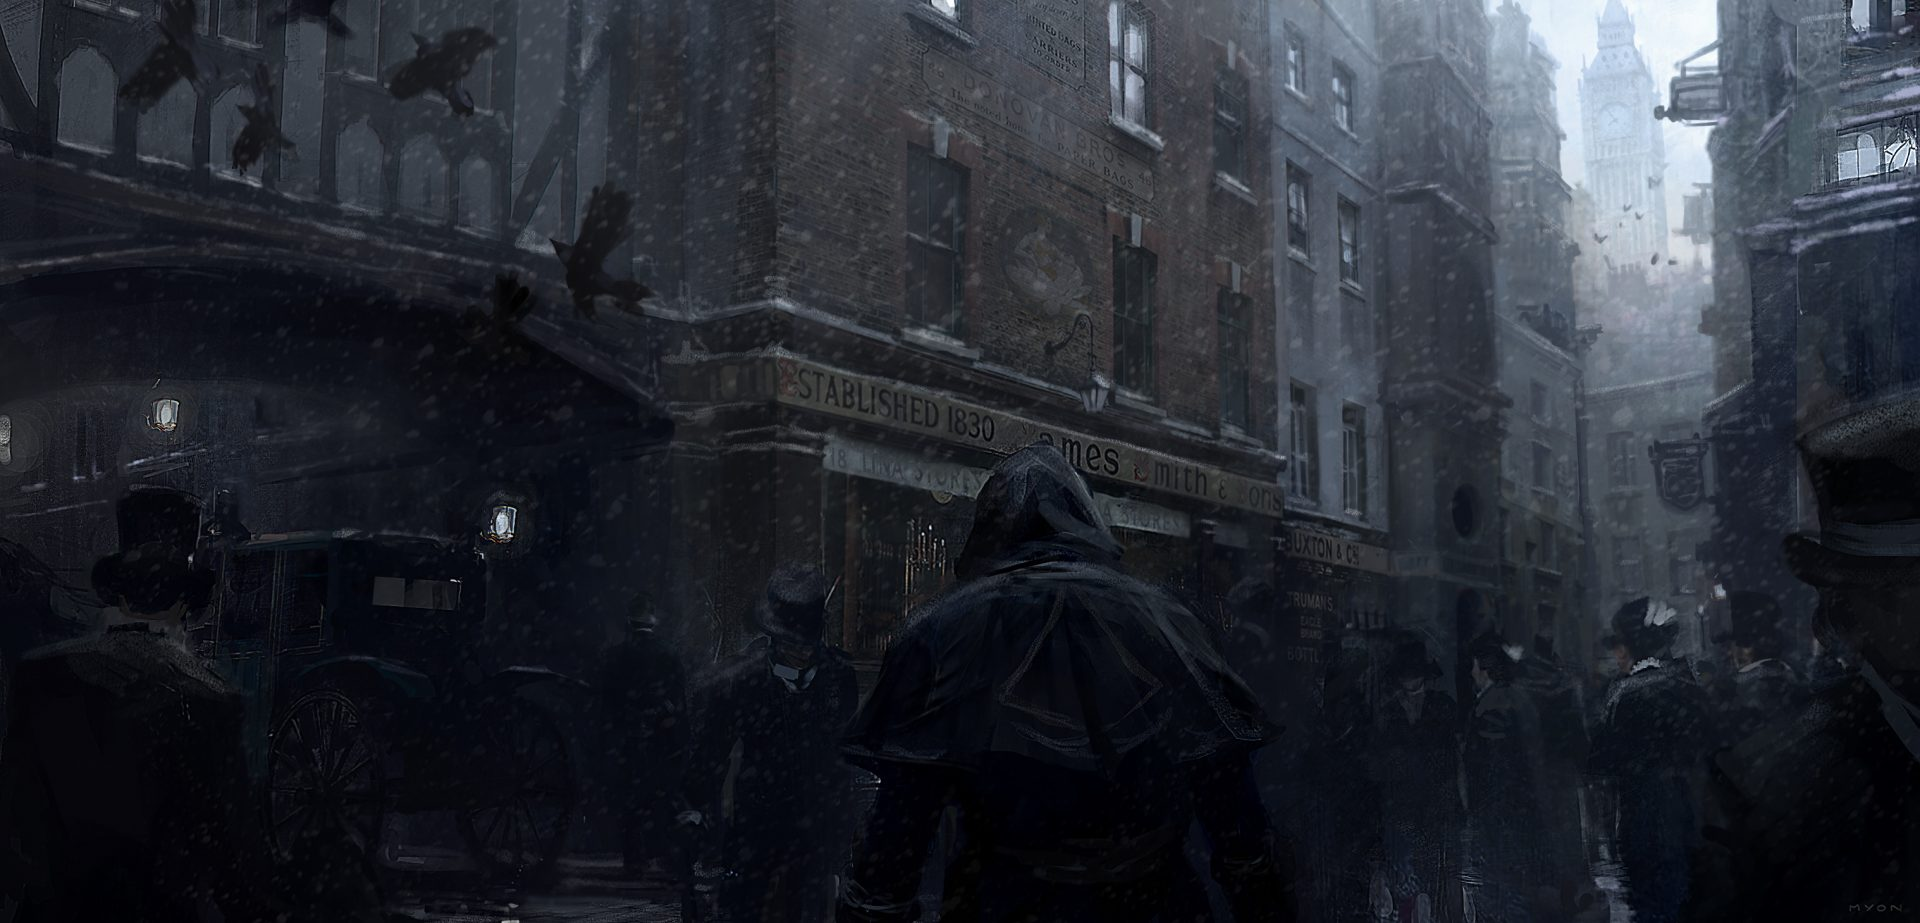 Roam Around London Through The Eyes Of Jack The Ripper